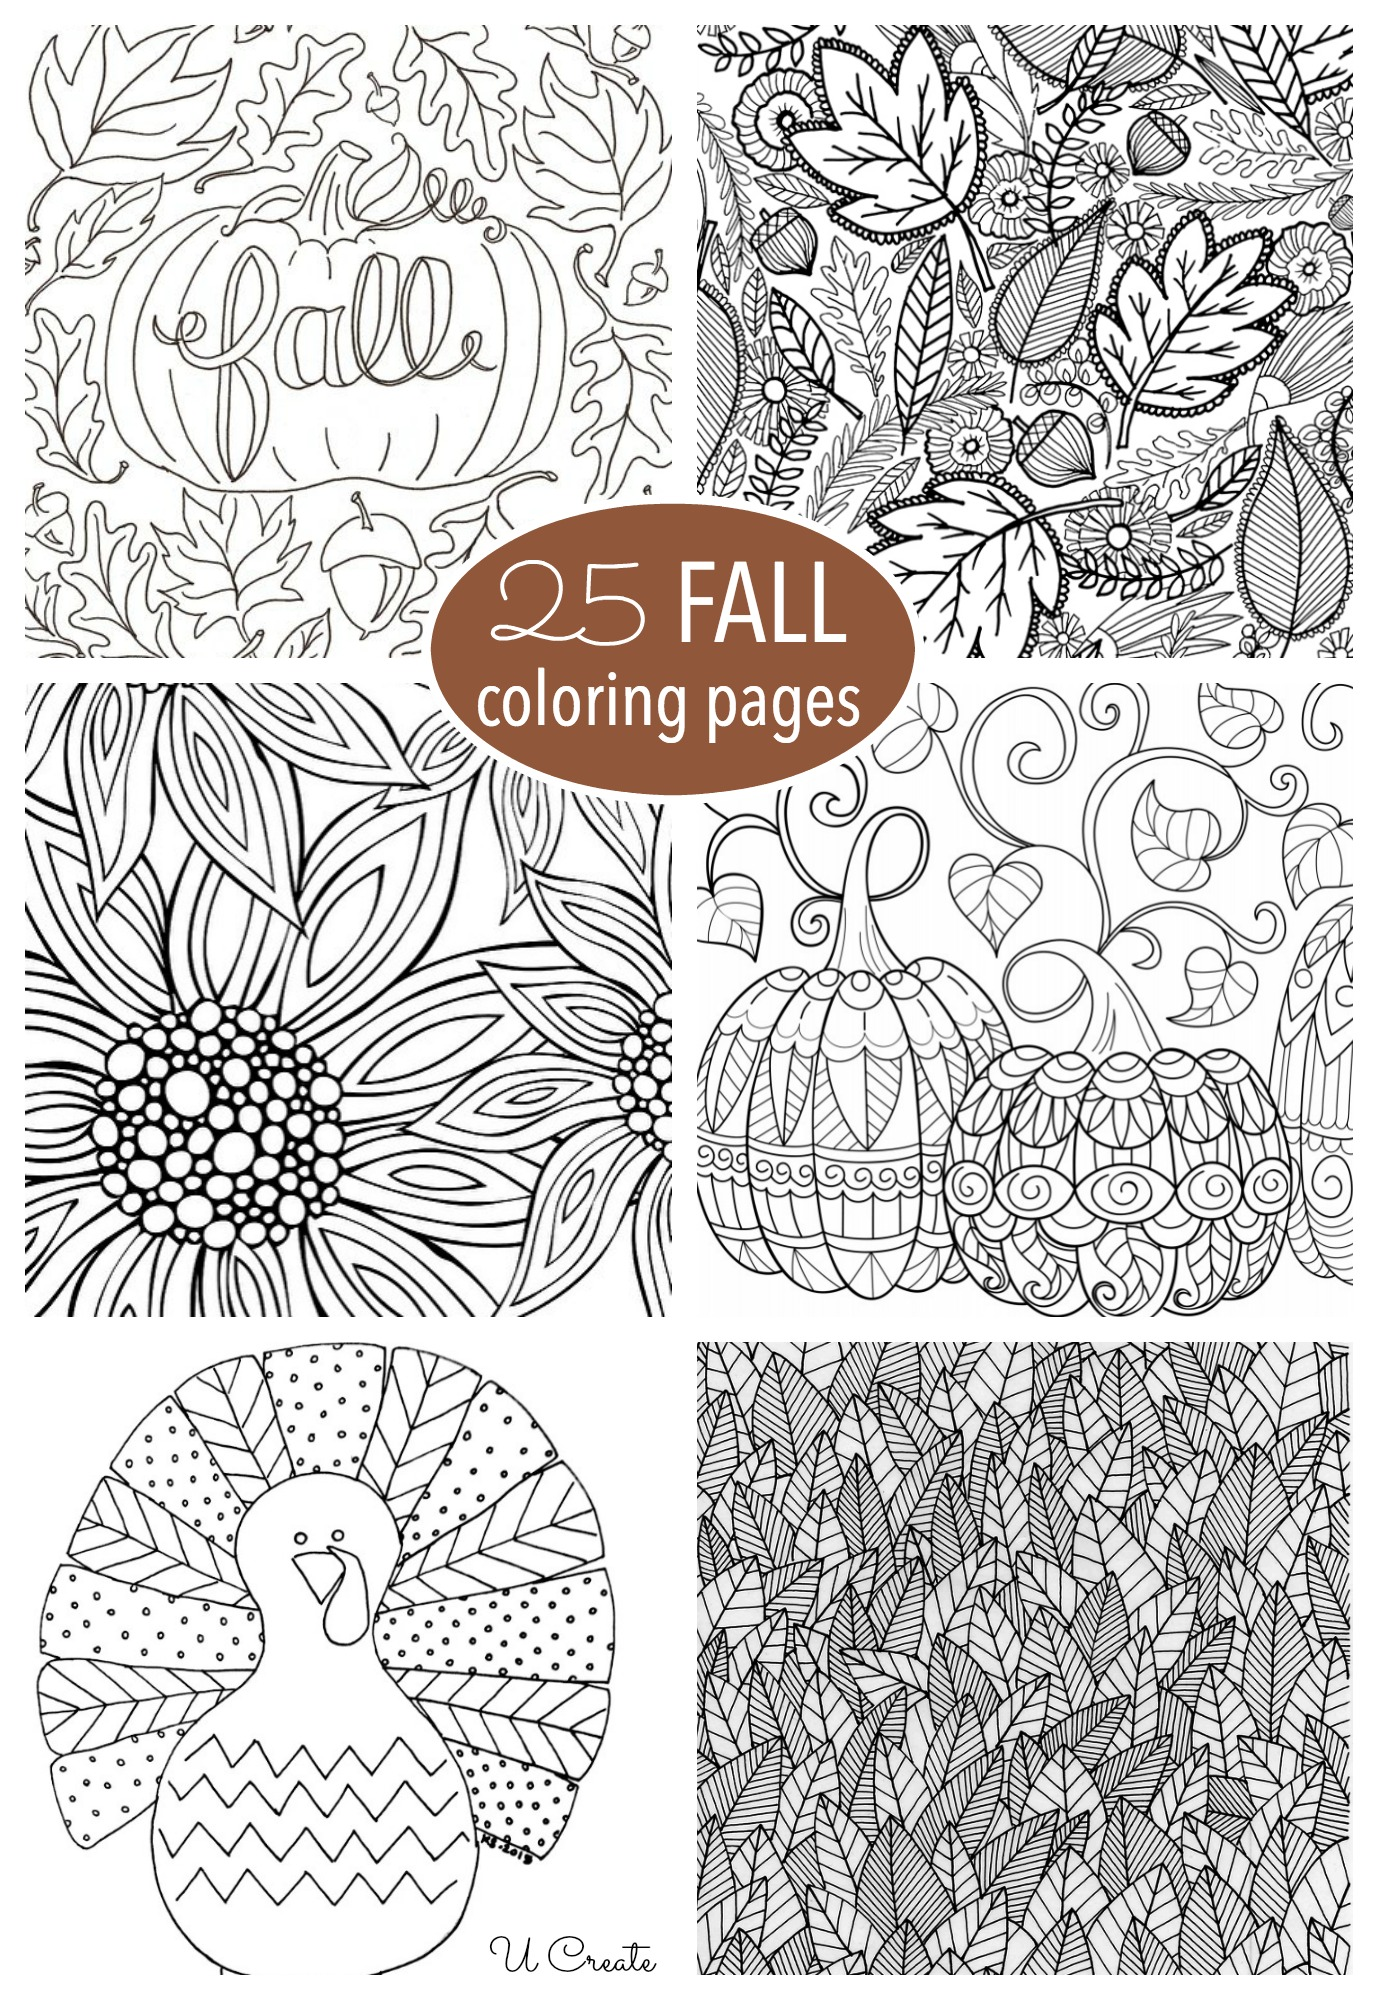 fall coloring pages printable free Free Fall Adult Coloring Pages   U Create fall coloring pages printable free